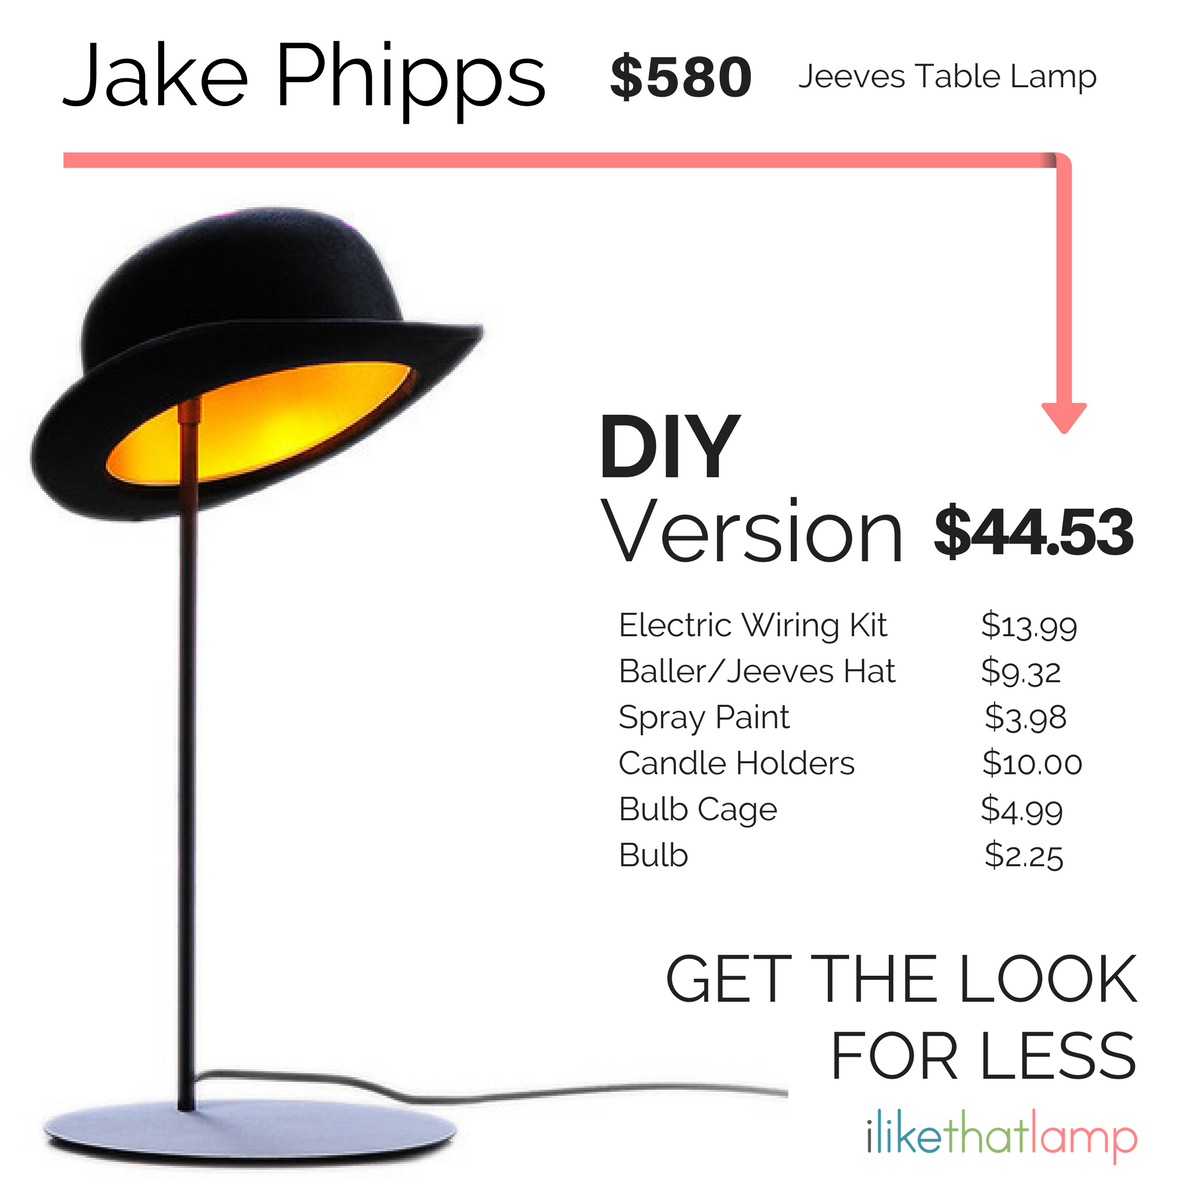 Get the look for less diy bowler hat table lamp bowler hat get the look for less 50 diy version of a 580 bowler hat table lamp geotapseo Image collections